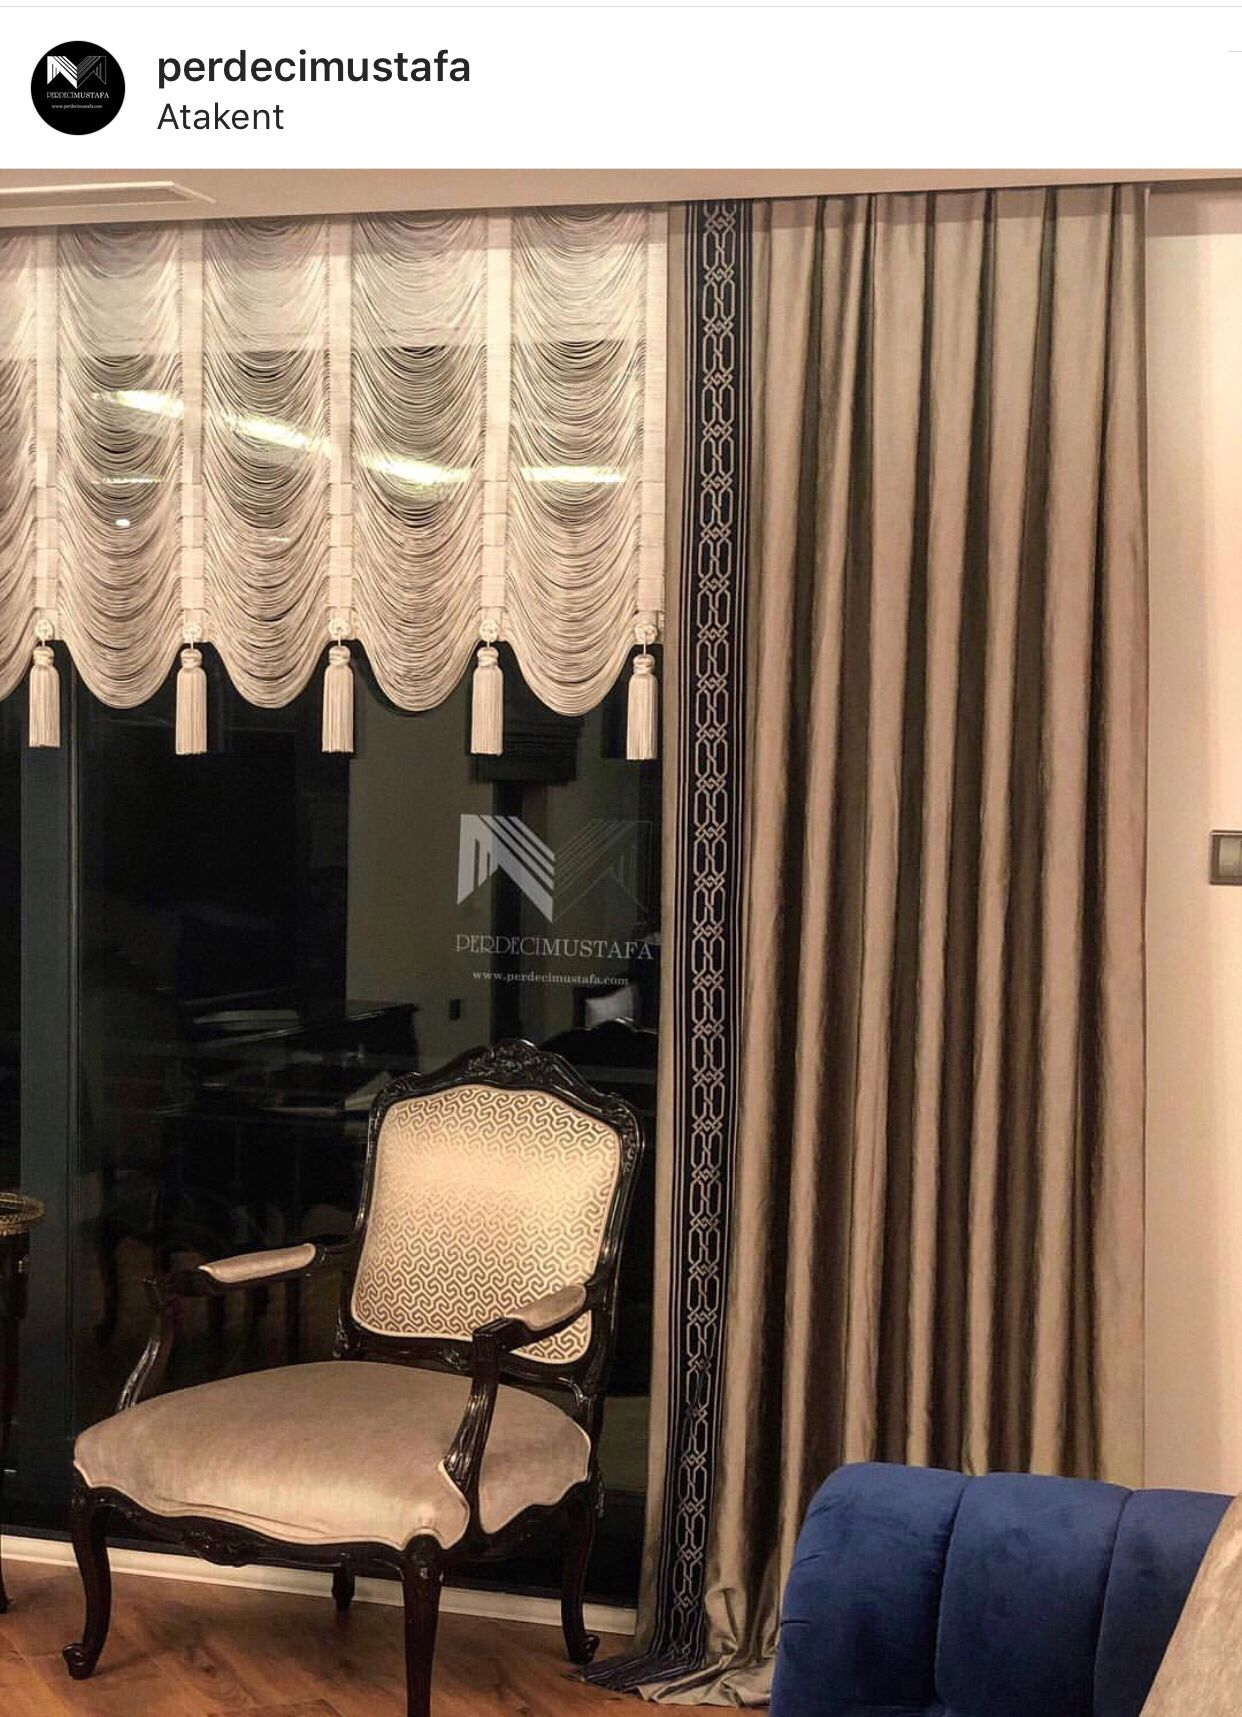 Window coverings to block sun  pin by cristiana cardoso dos santos on cortinas in   pinterest